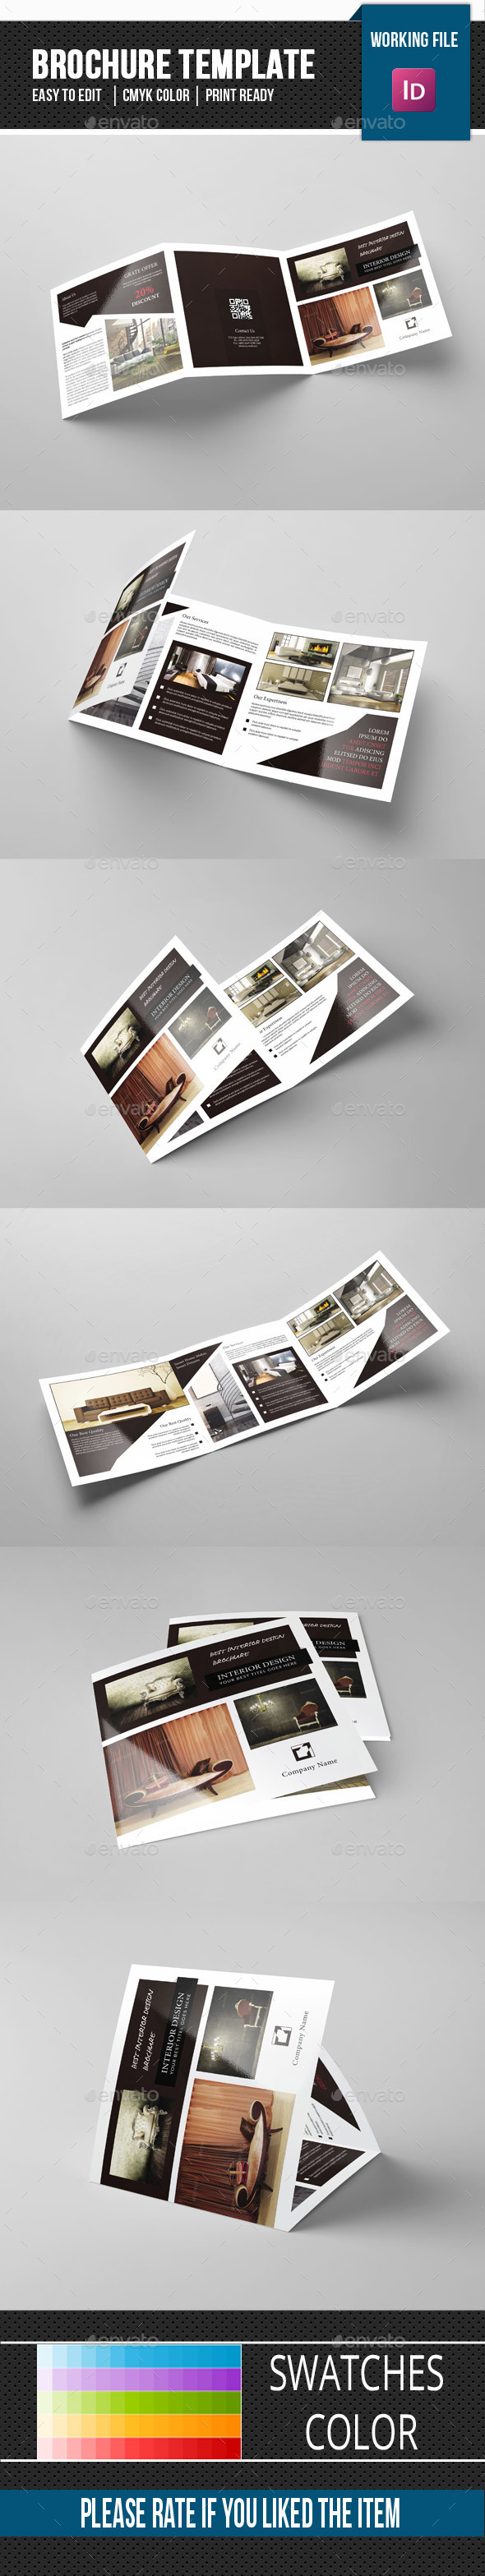 Square Trifold Brochure for Interior Design-V82 - Corporate Brochures